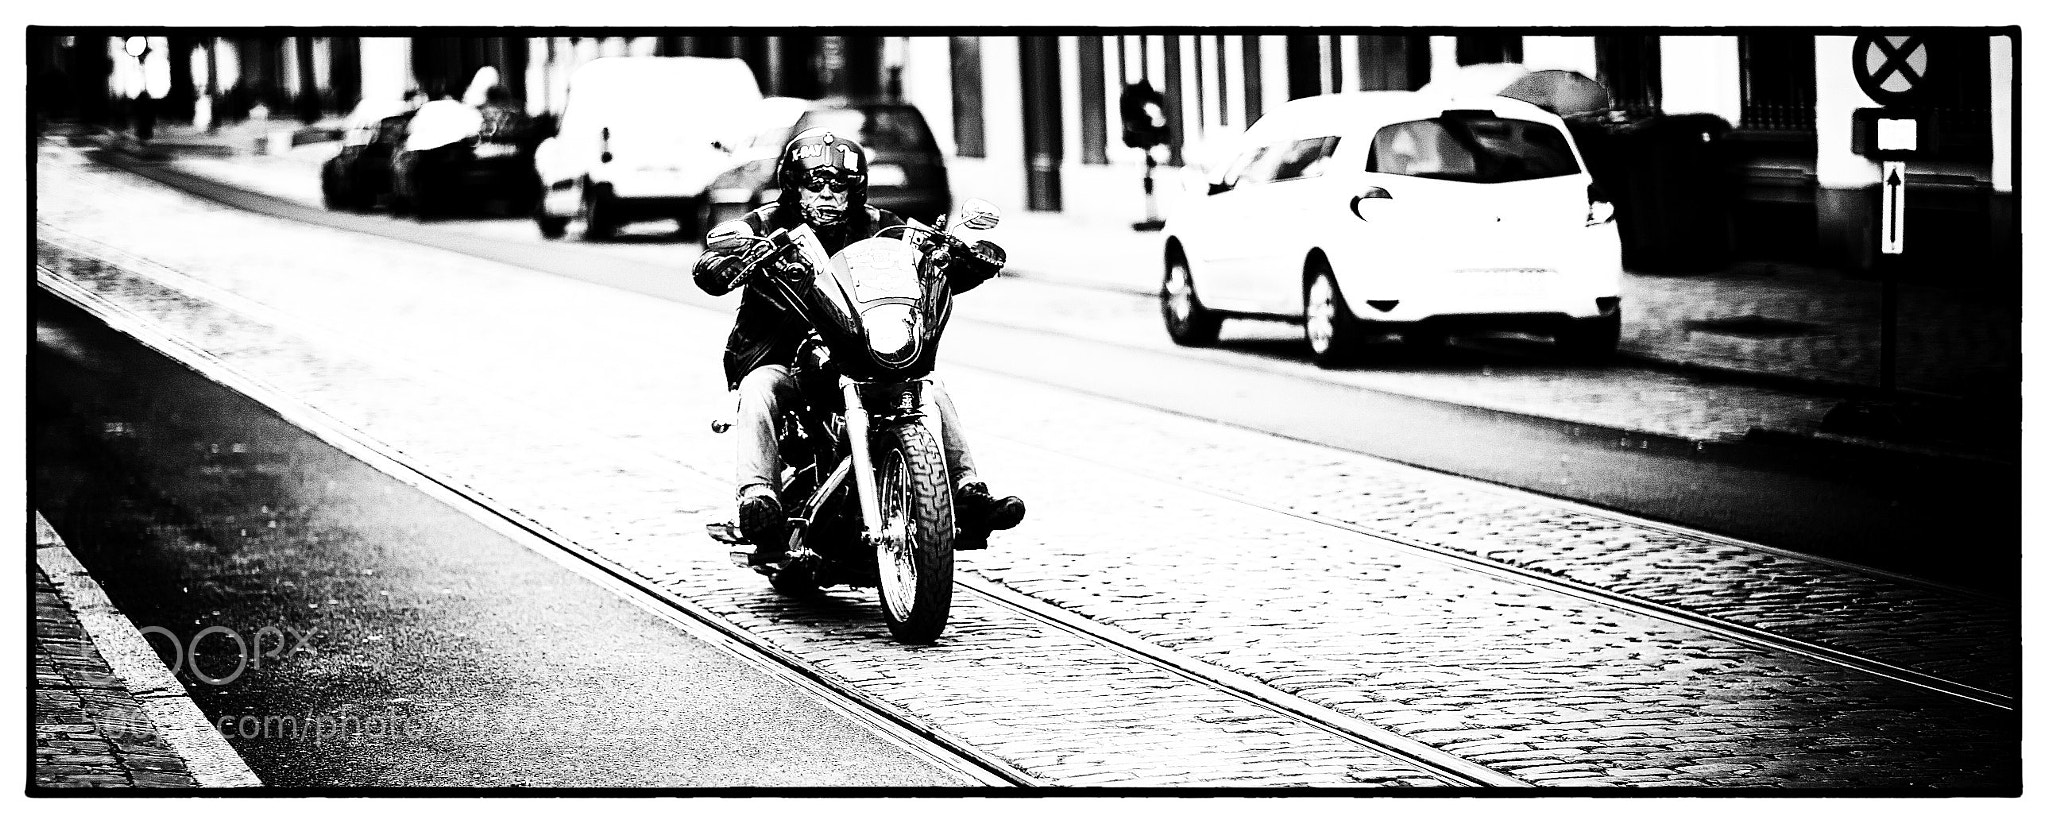 Photograph Son of Anarchy by Fouquier  on 500px